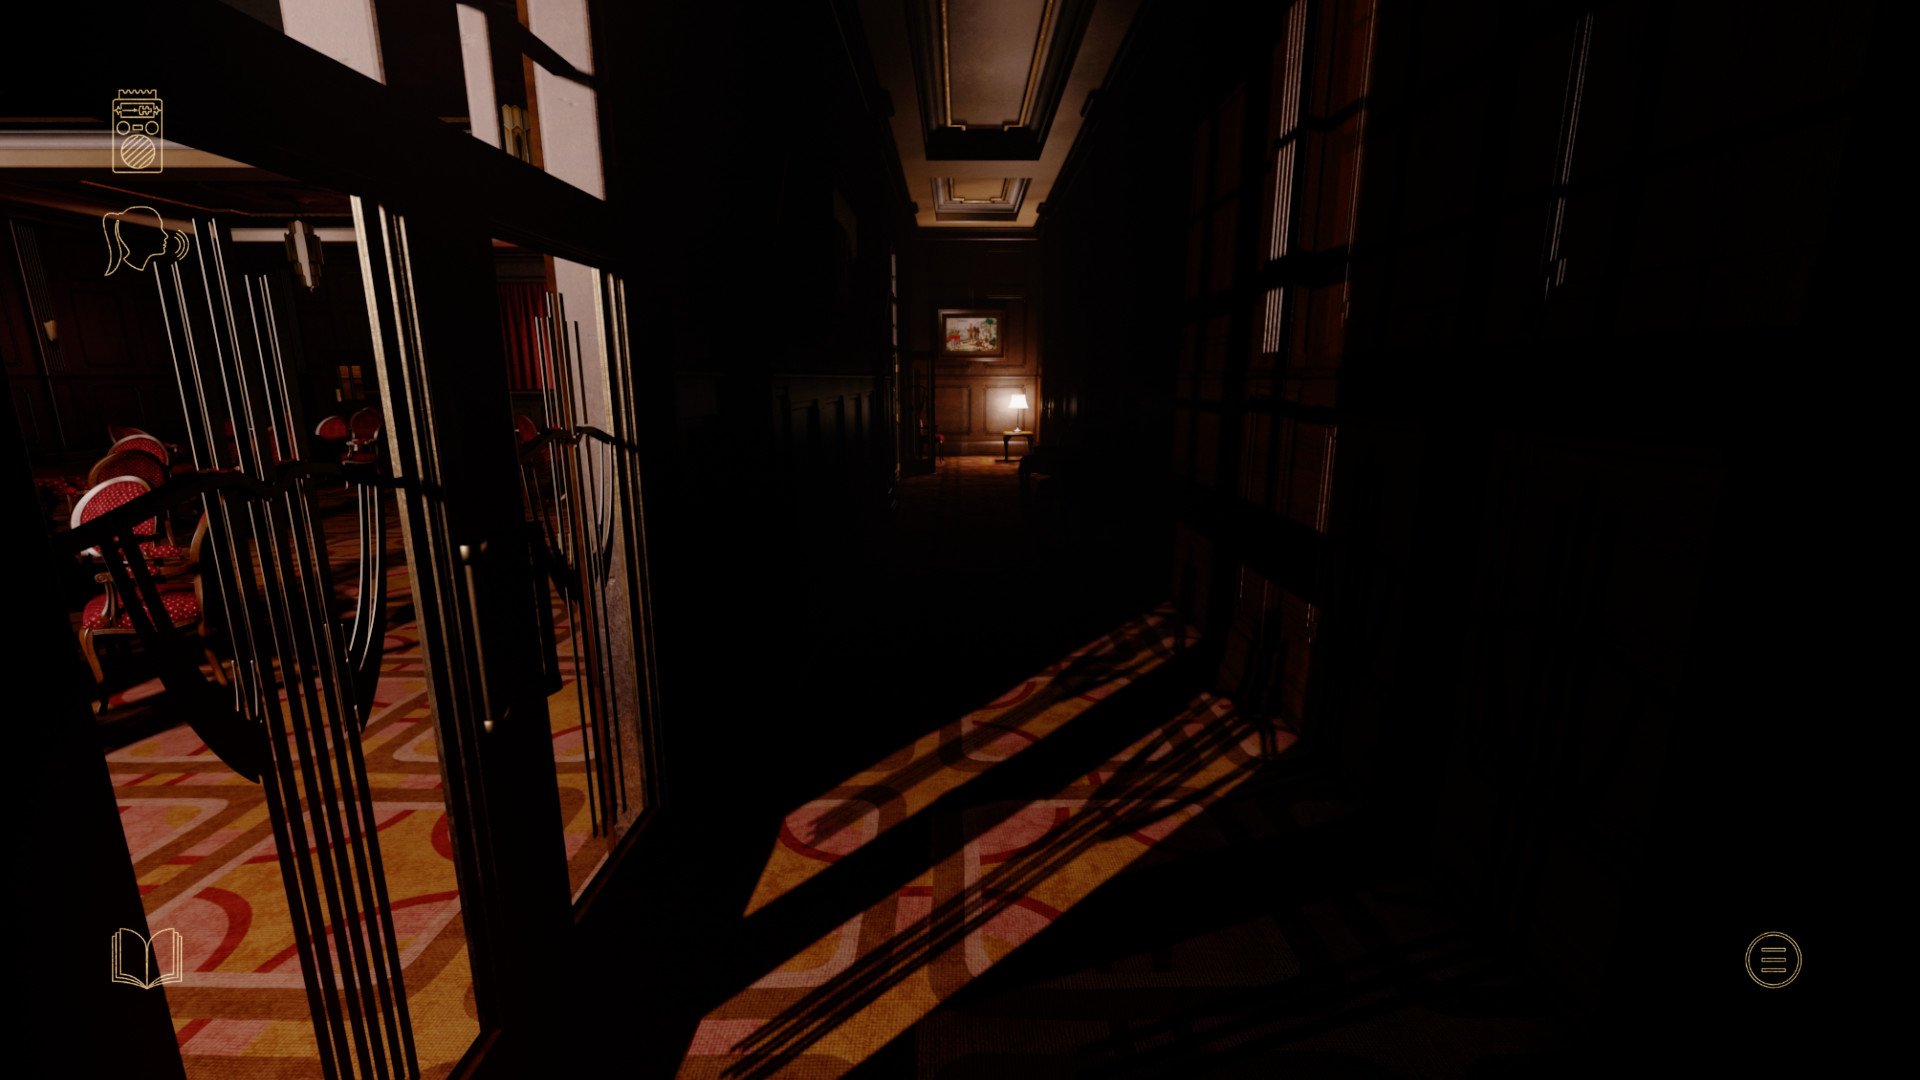 At Dead Of Night screenshot